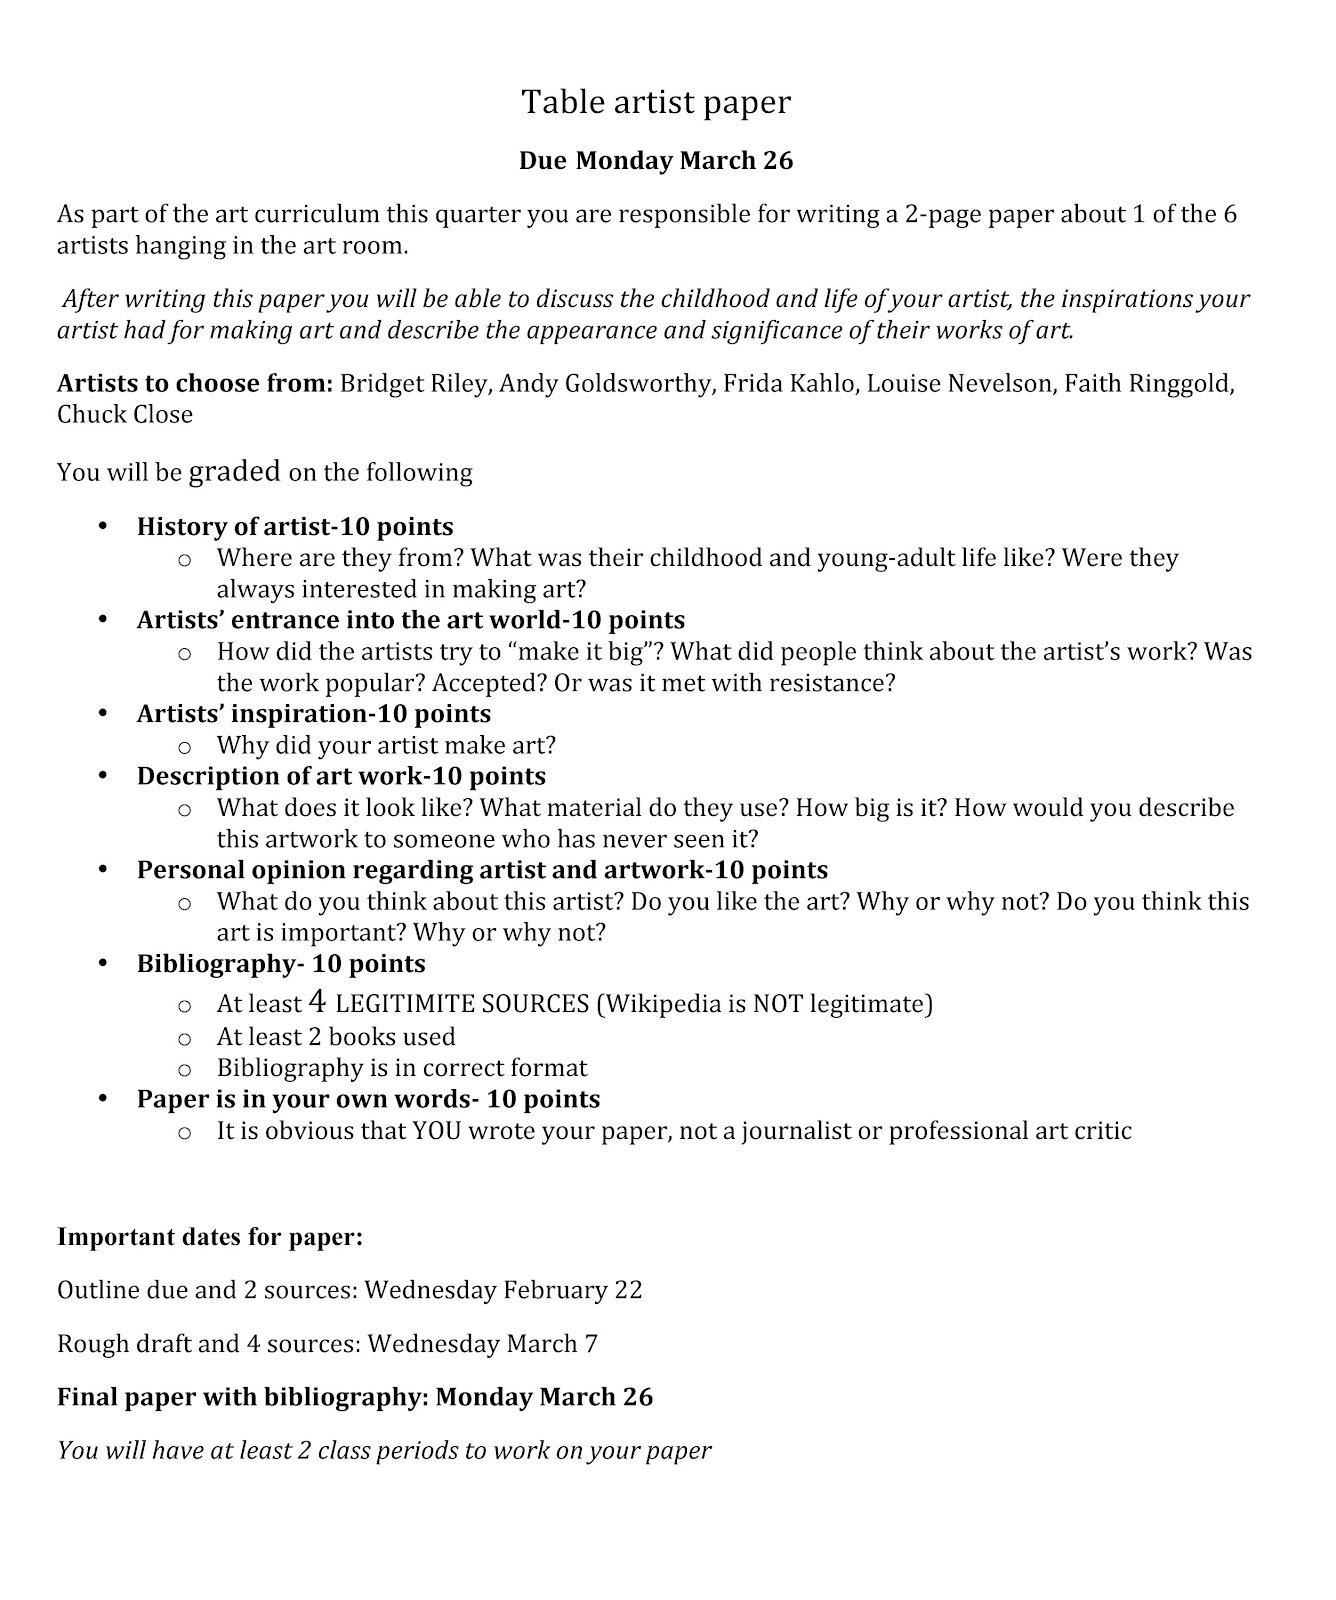 013 Tableartistpaper Middle School Research Paper Phenomenal Questions Science Topics Full